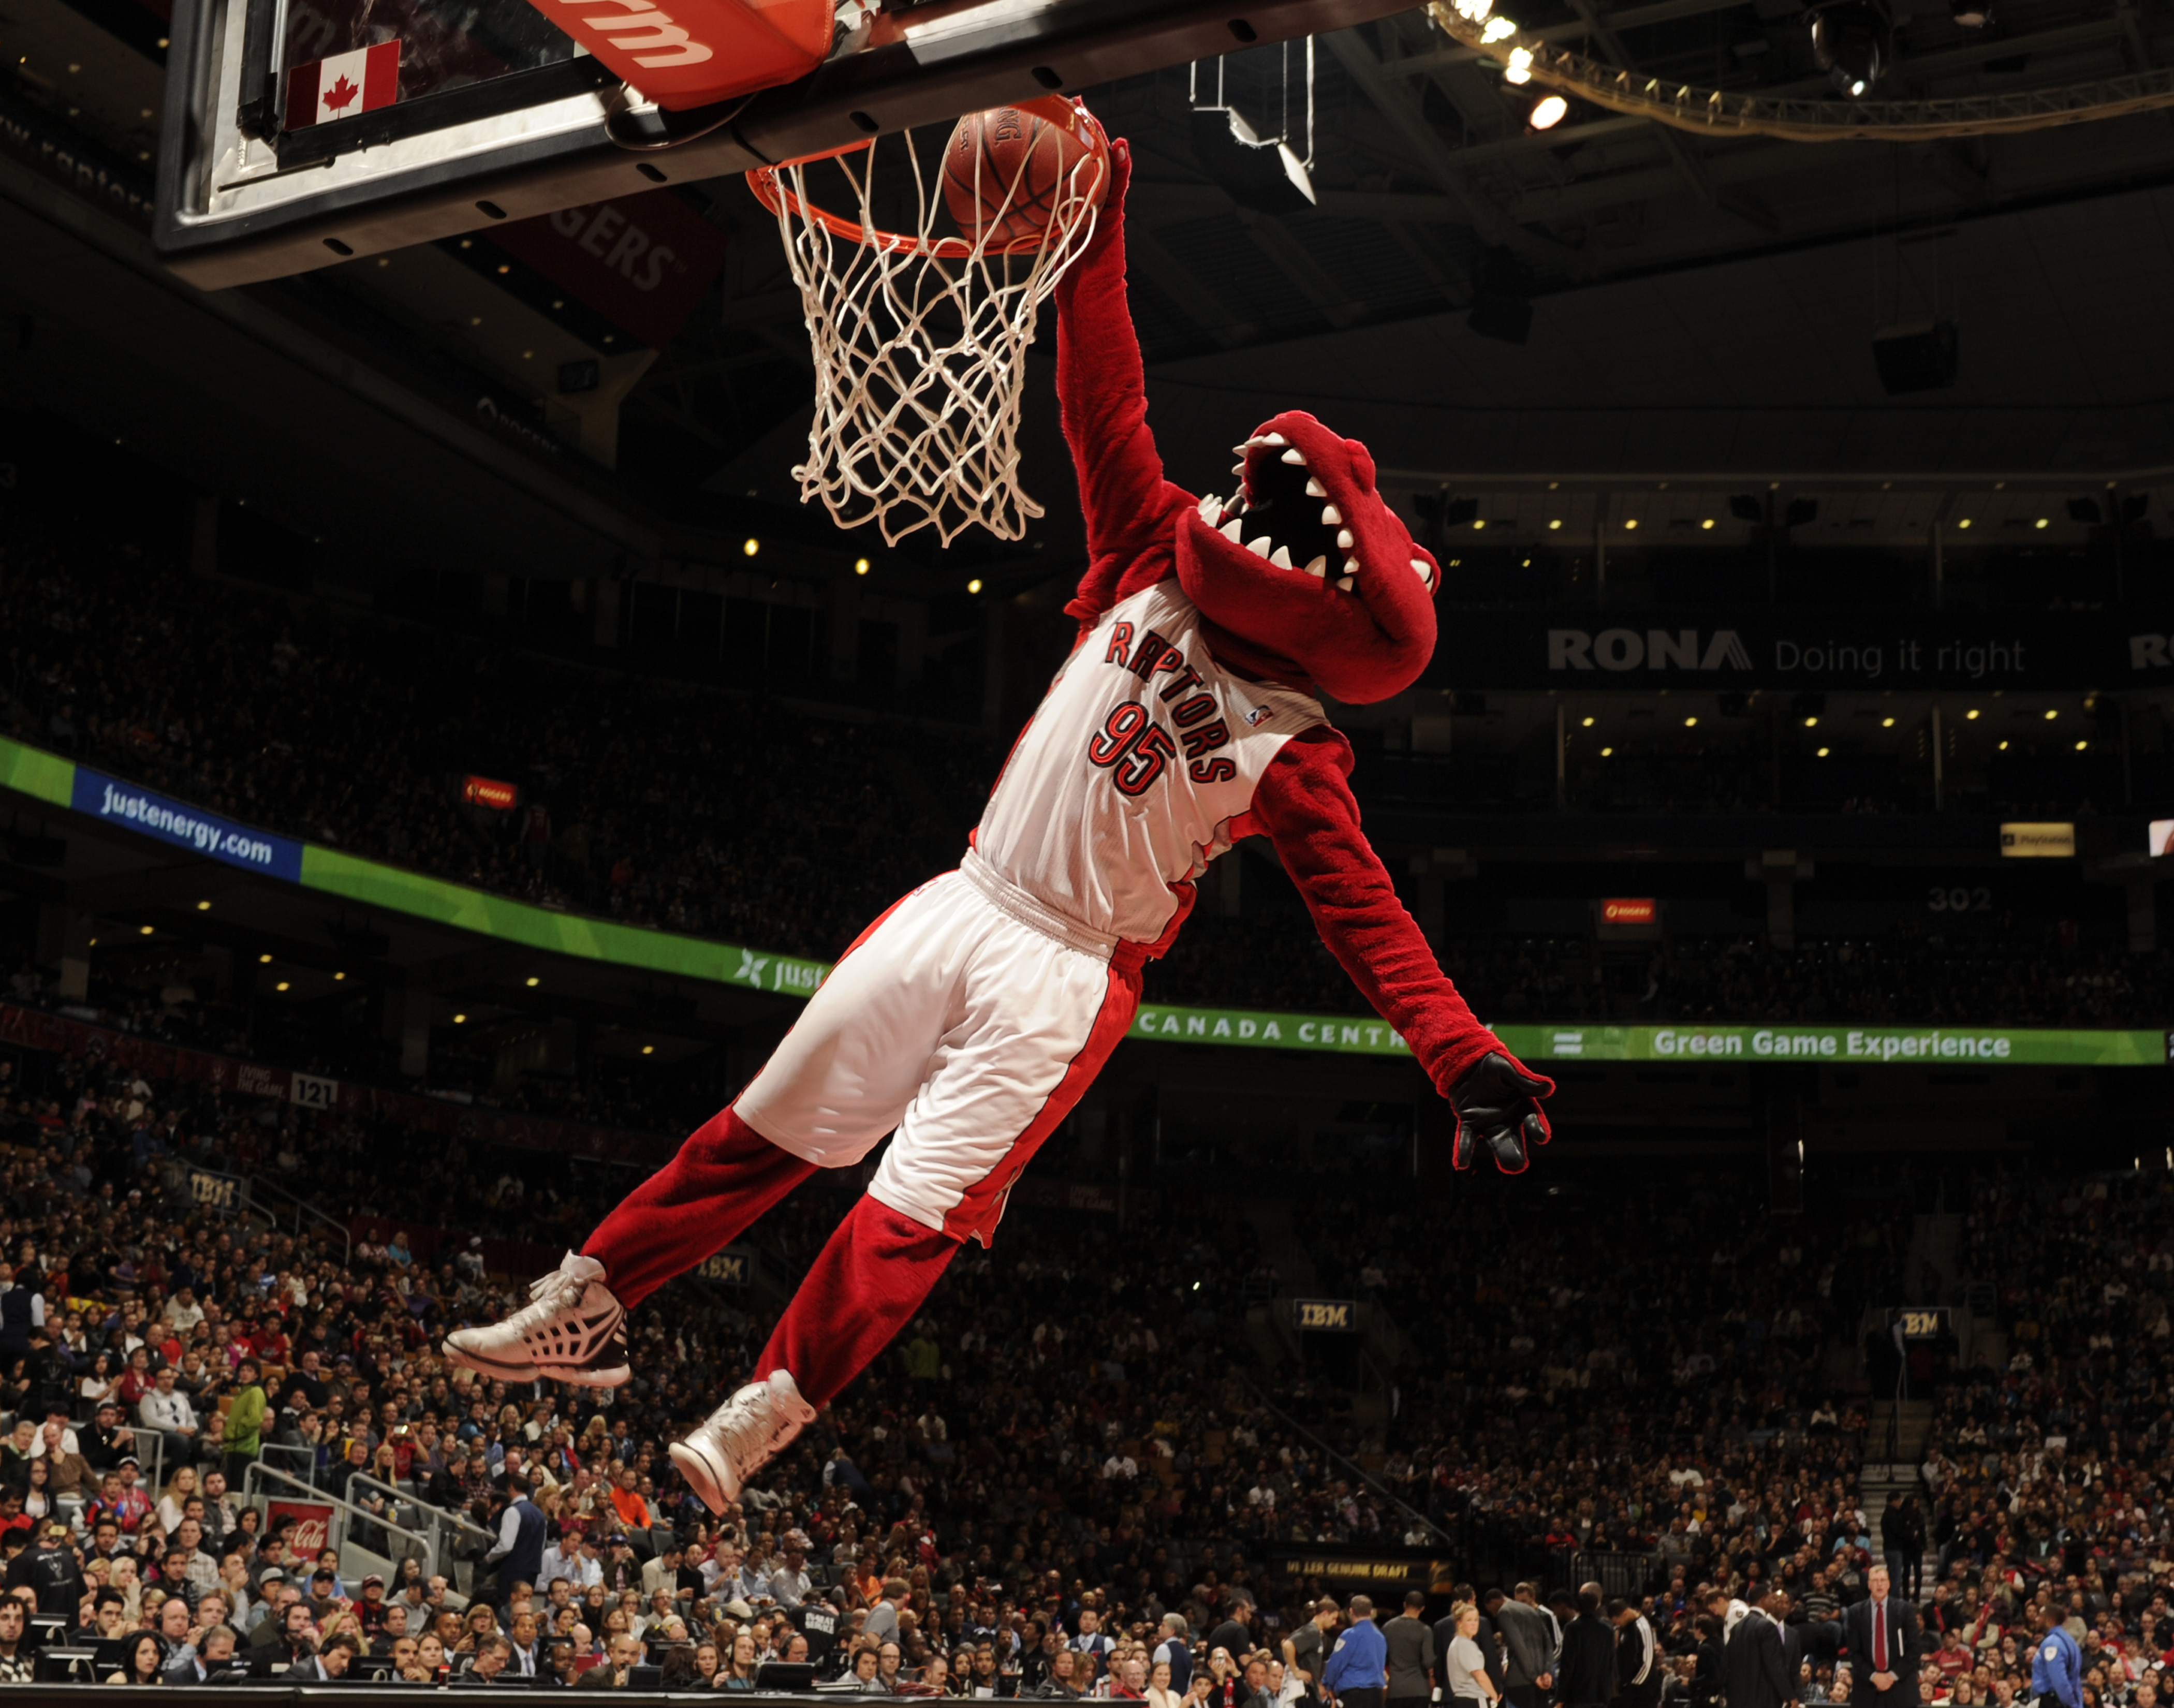 Raptors HD Wallpapers Hd Wallpapers 4200x3300